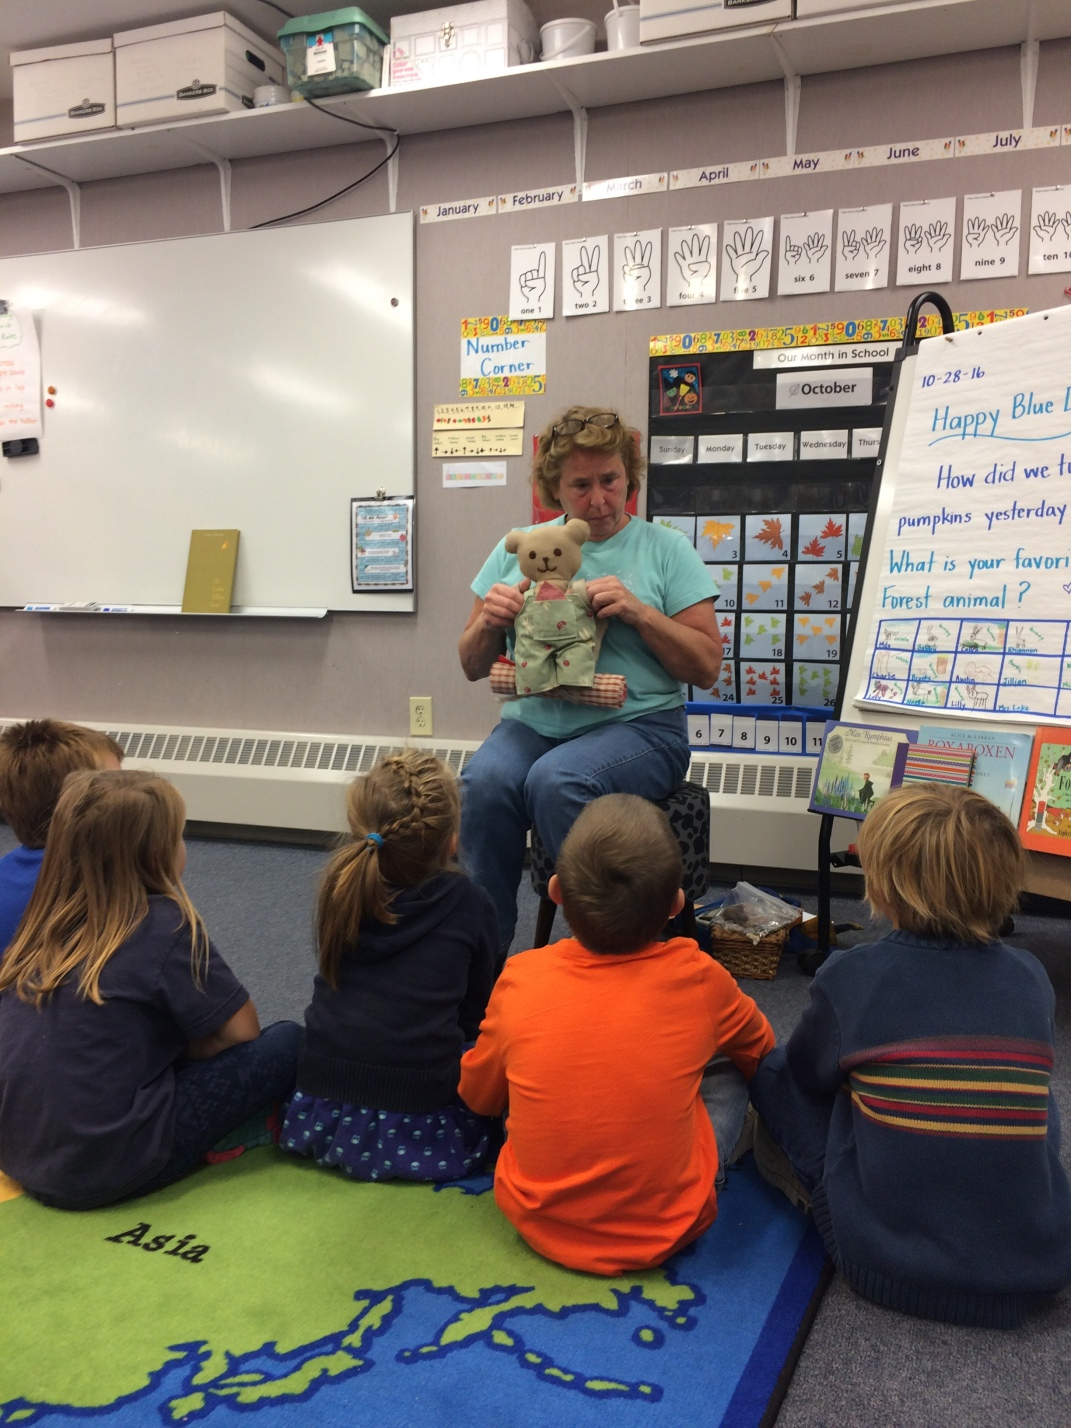 Miss Ogden shared about her life as the Fish Bag sharper today